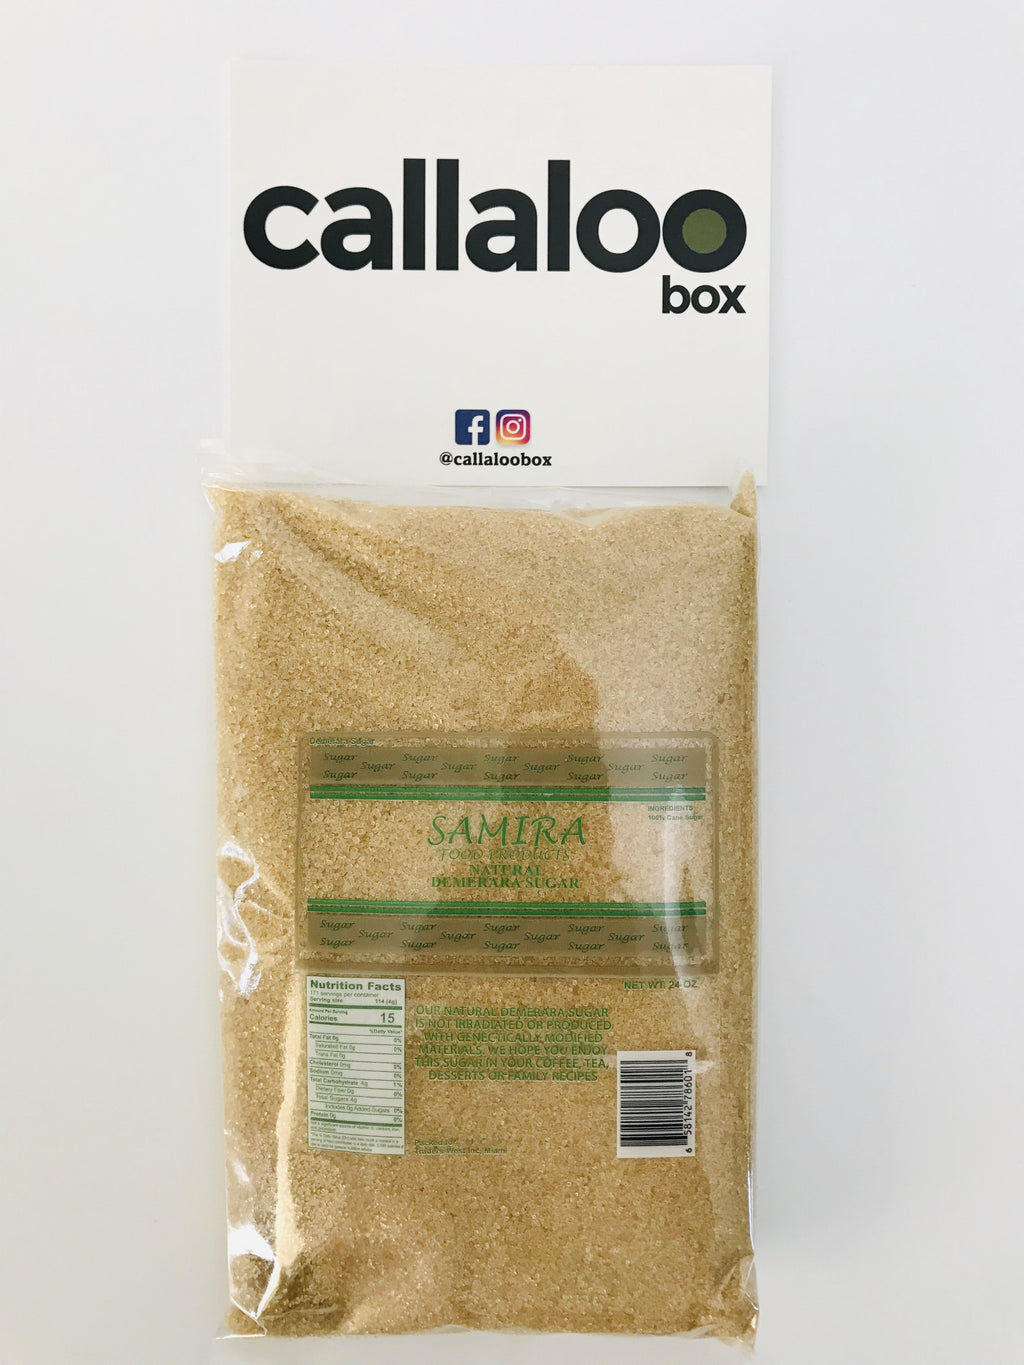 Callaloo Box Trinidad Tobago Subscription Box Caribbean Online Grocery_Samira Food Products - Natural Demerara Sugar - 1.5lbs